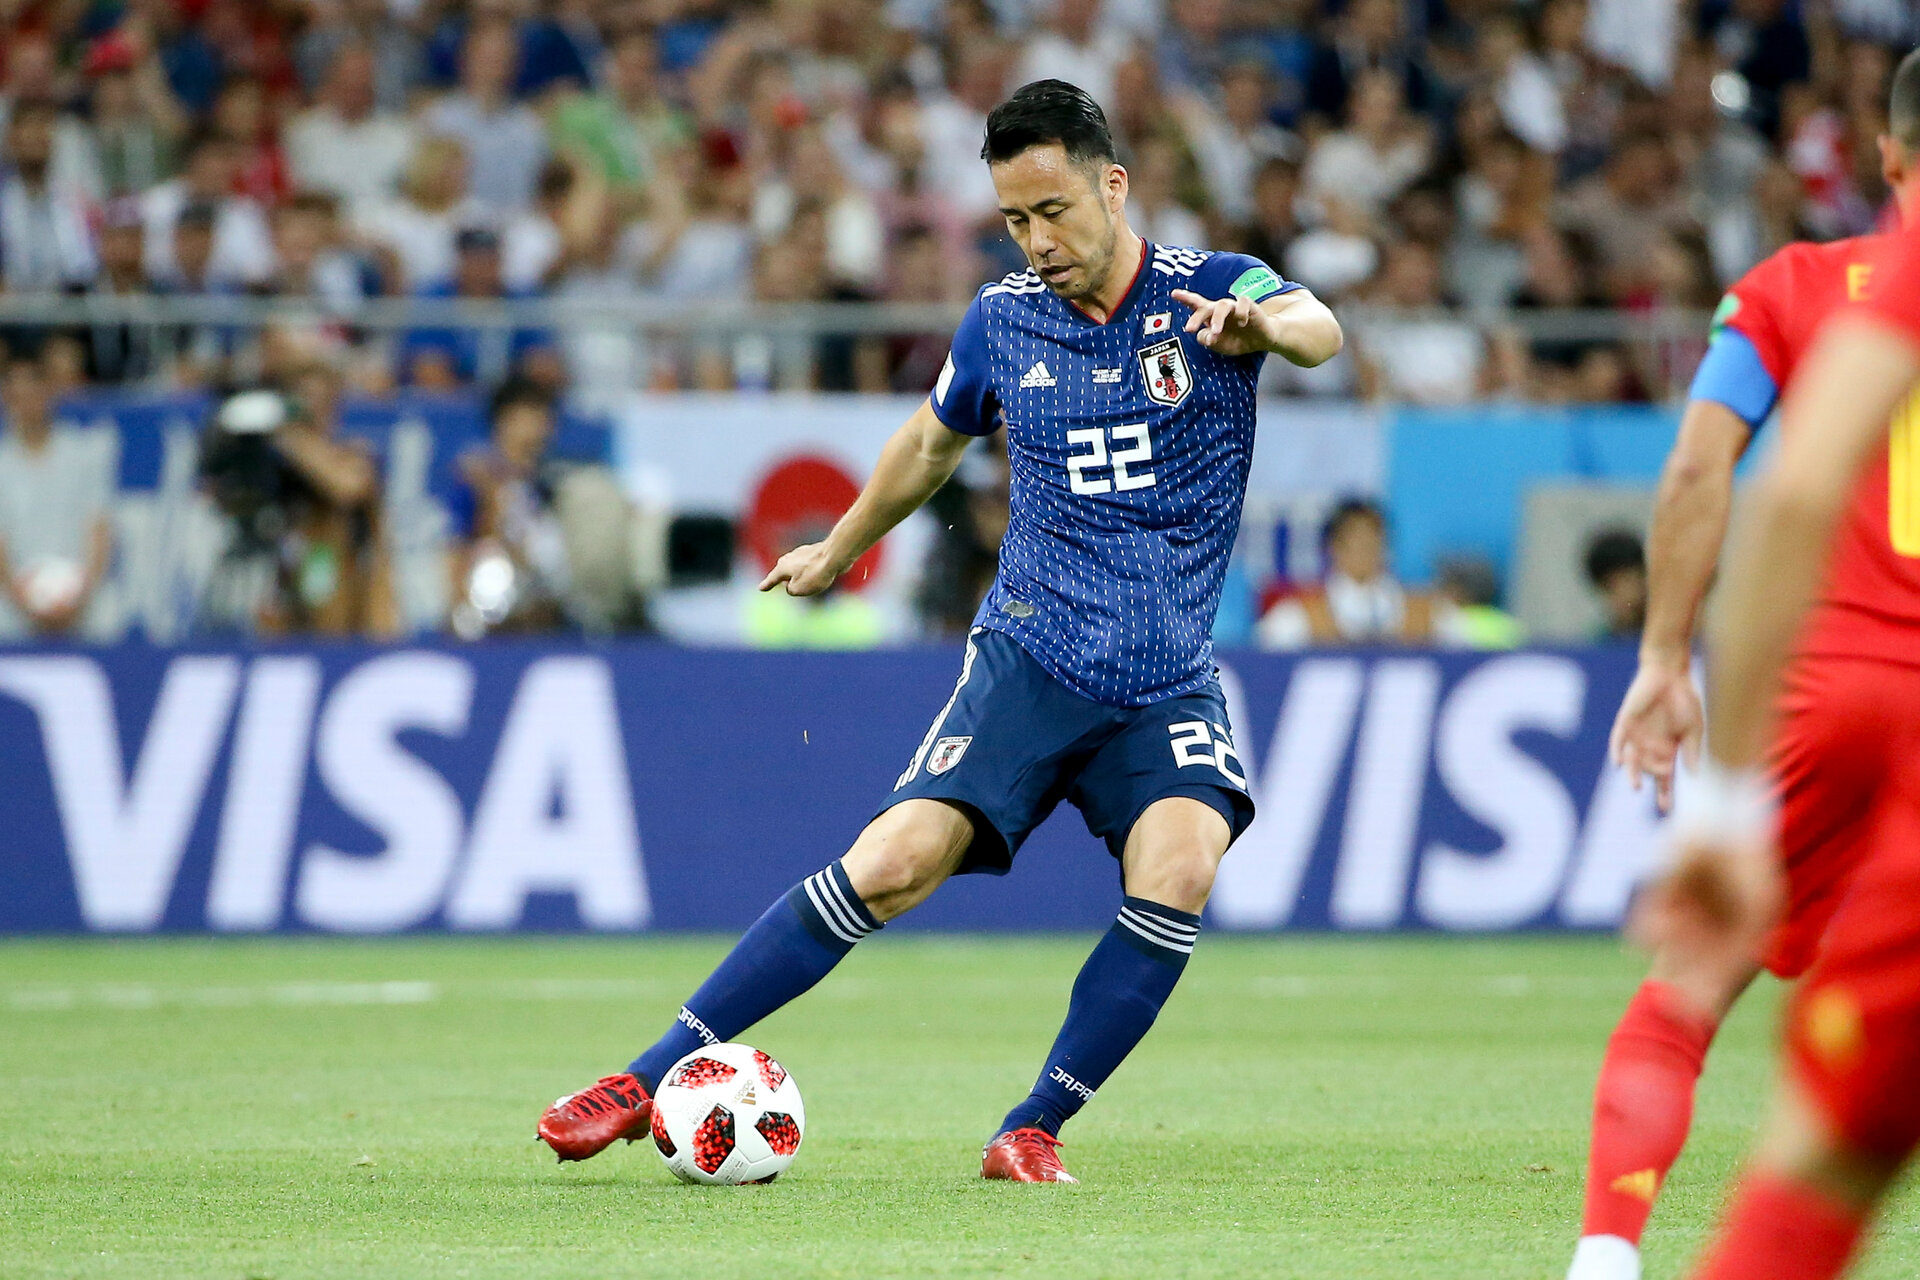 ROSTOV-ON-DON, RUSSIA - JULY 2: Maya Yoshida of Japan during the 2018 FIFA World Cup Russia Round of 16 match between Belgium and Japan at Rostov Arena on July 2, 2018 in Rostov-on-Don, Russia. (Photo by Jean Catuffe/Getty Images)